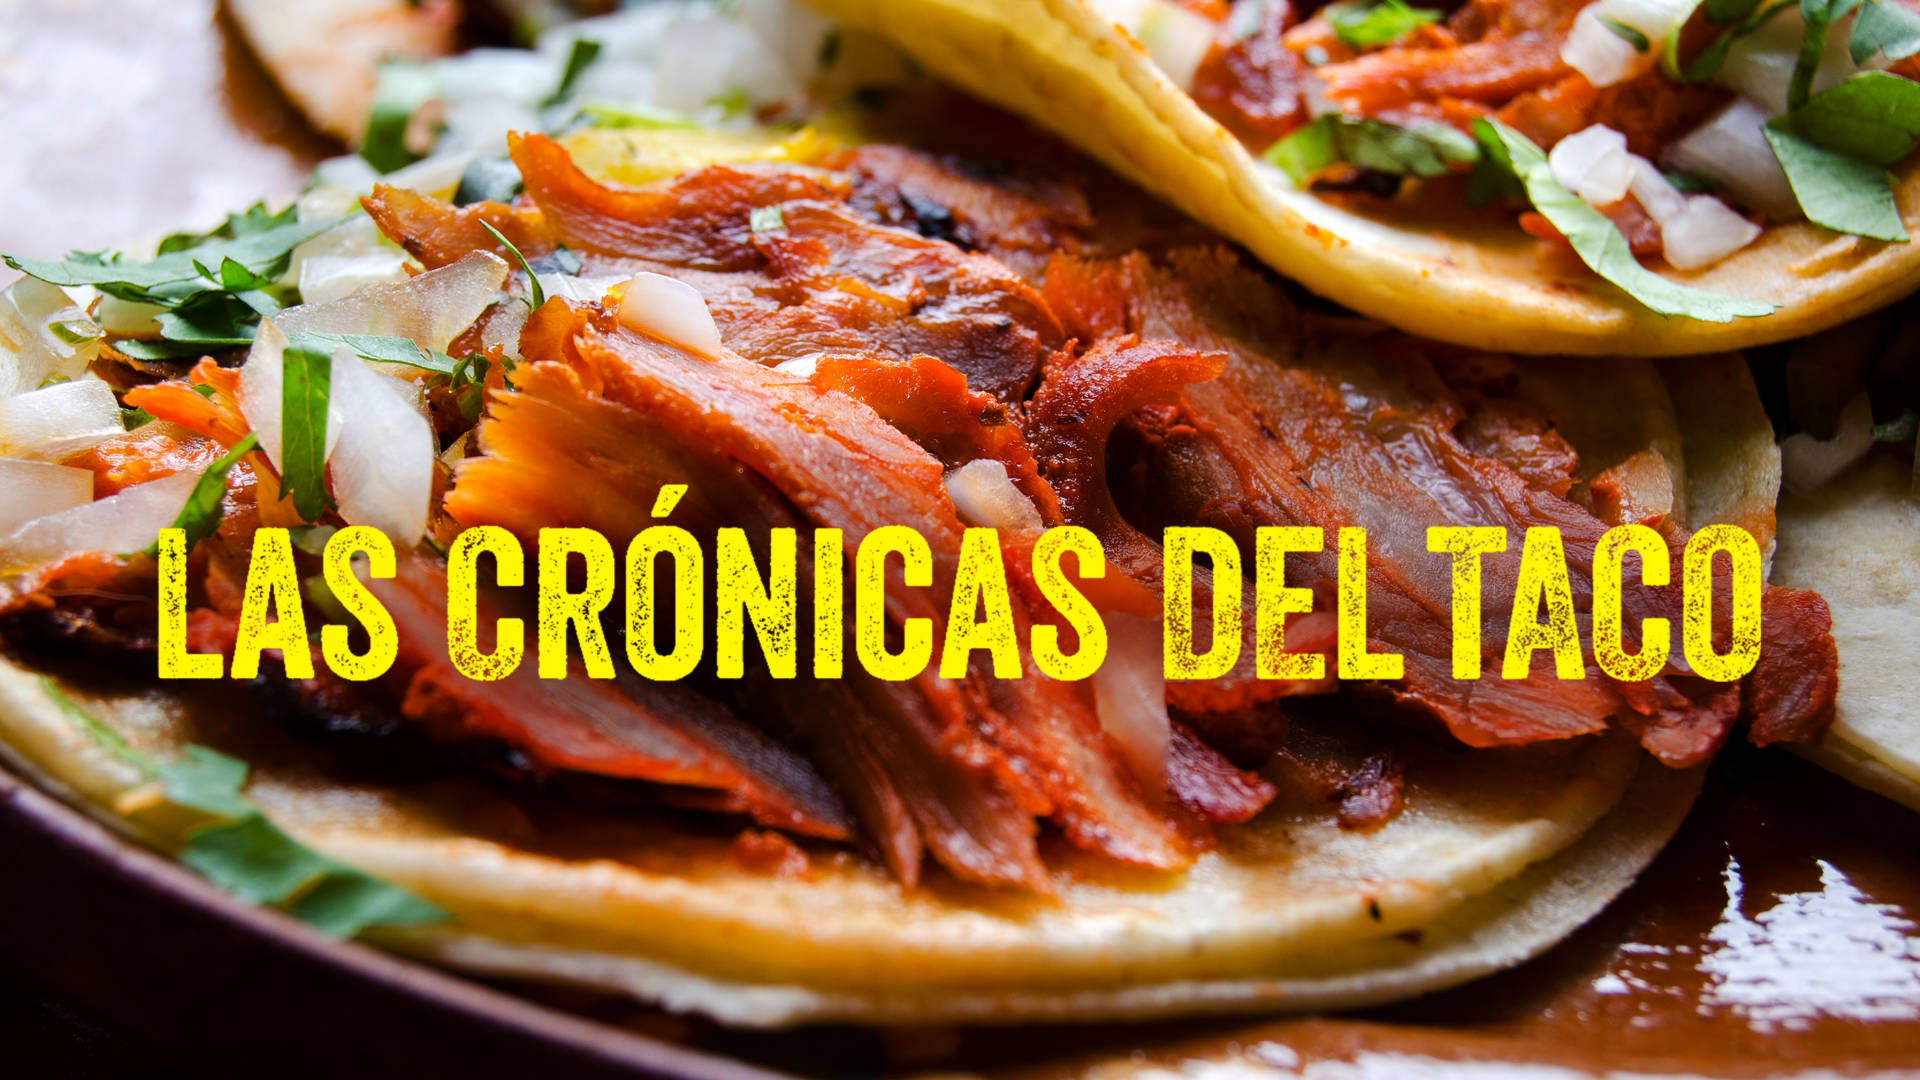 Netflix's documentary series 'Las Crónicas del Taco' was released in July 2019.